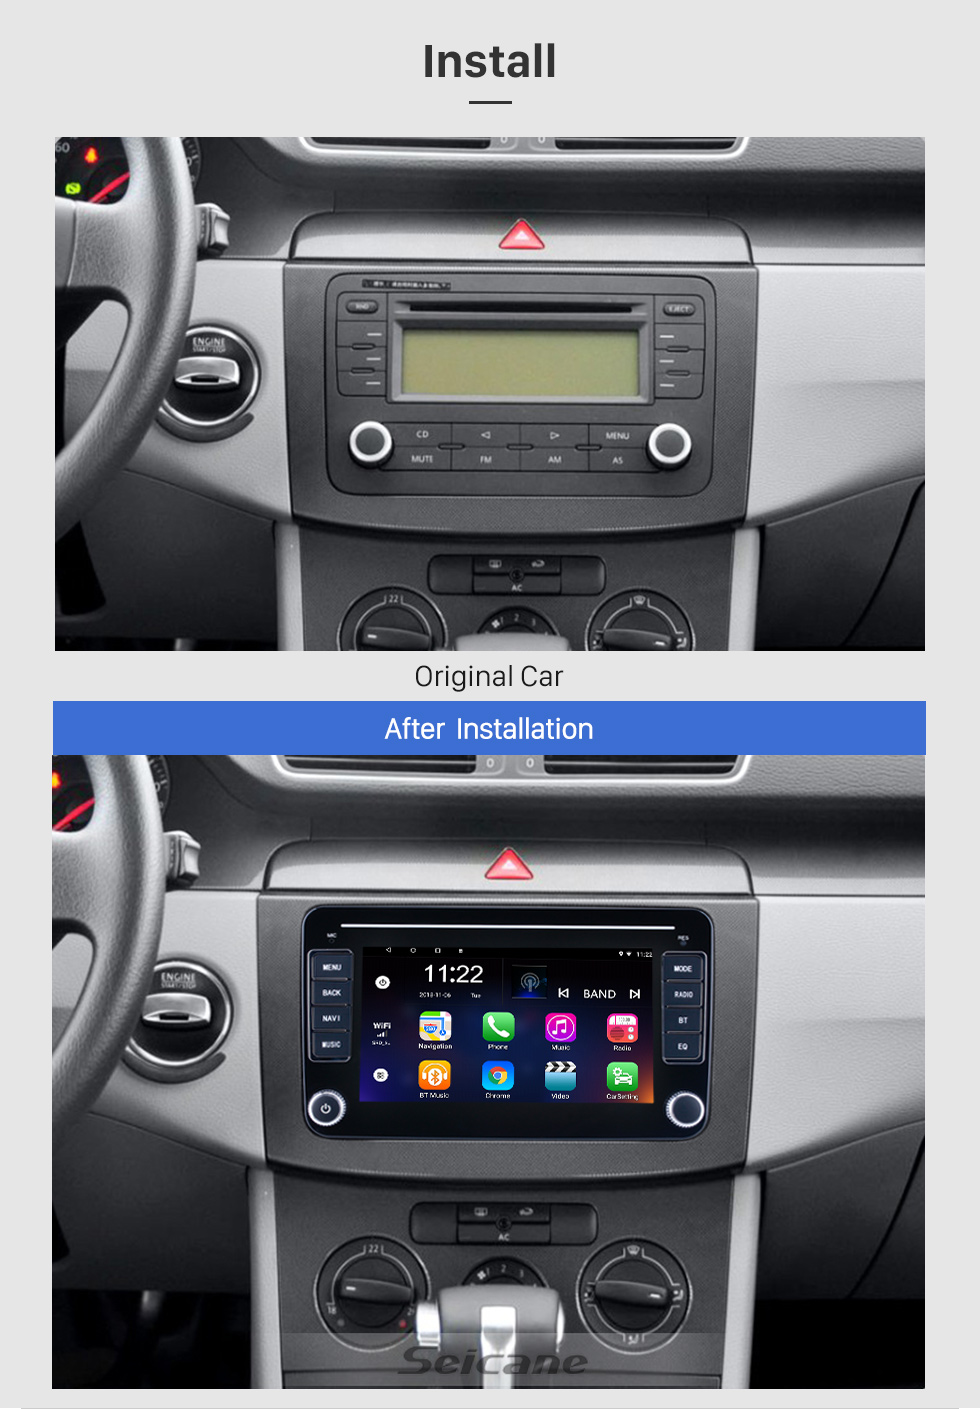 Seicane Aftermarket Android 10.0 for VW Volkswagen Universal Radio 7 inch HD Touchscreen GPS Navigation System With Bluetooth support Carplay TPMS